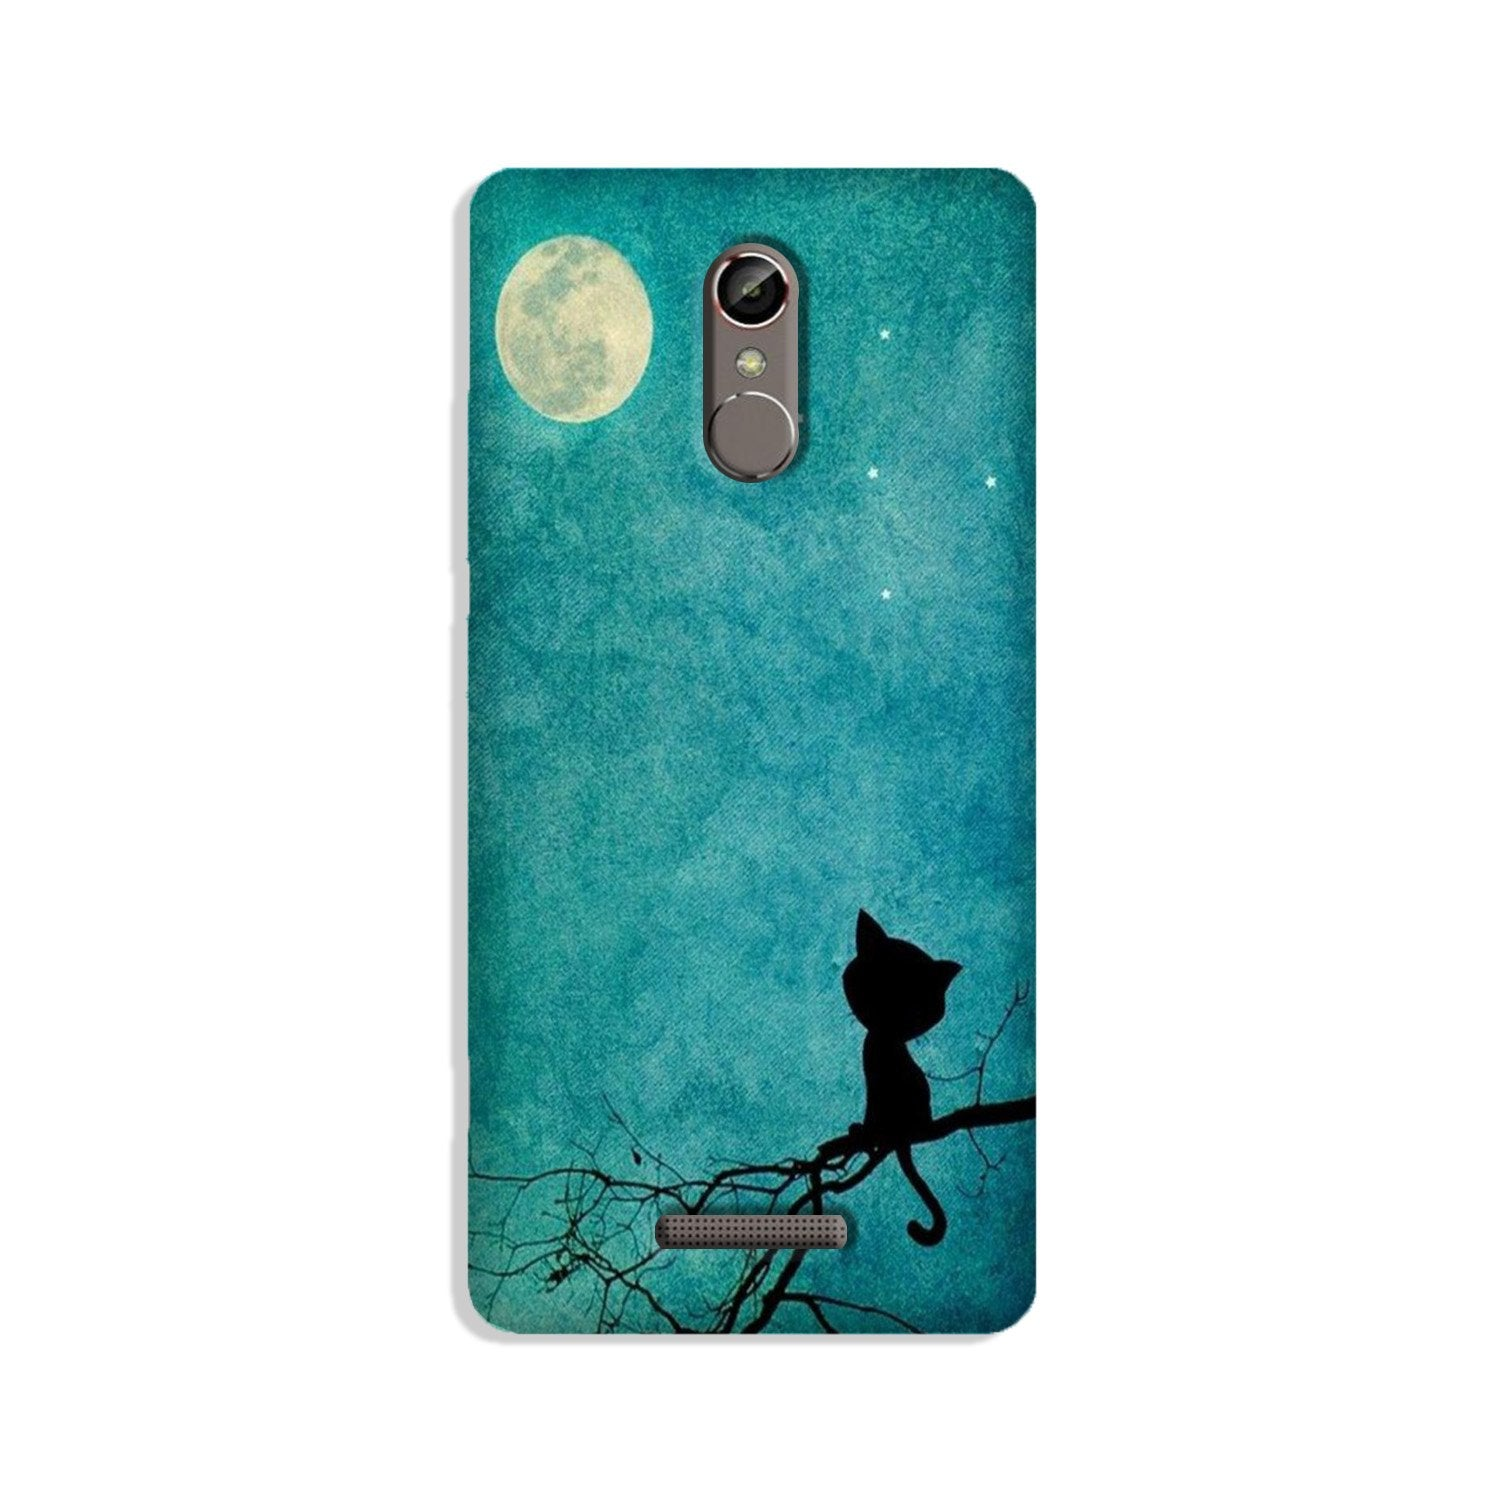 Moon cat Case for Redmi Note 3